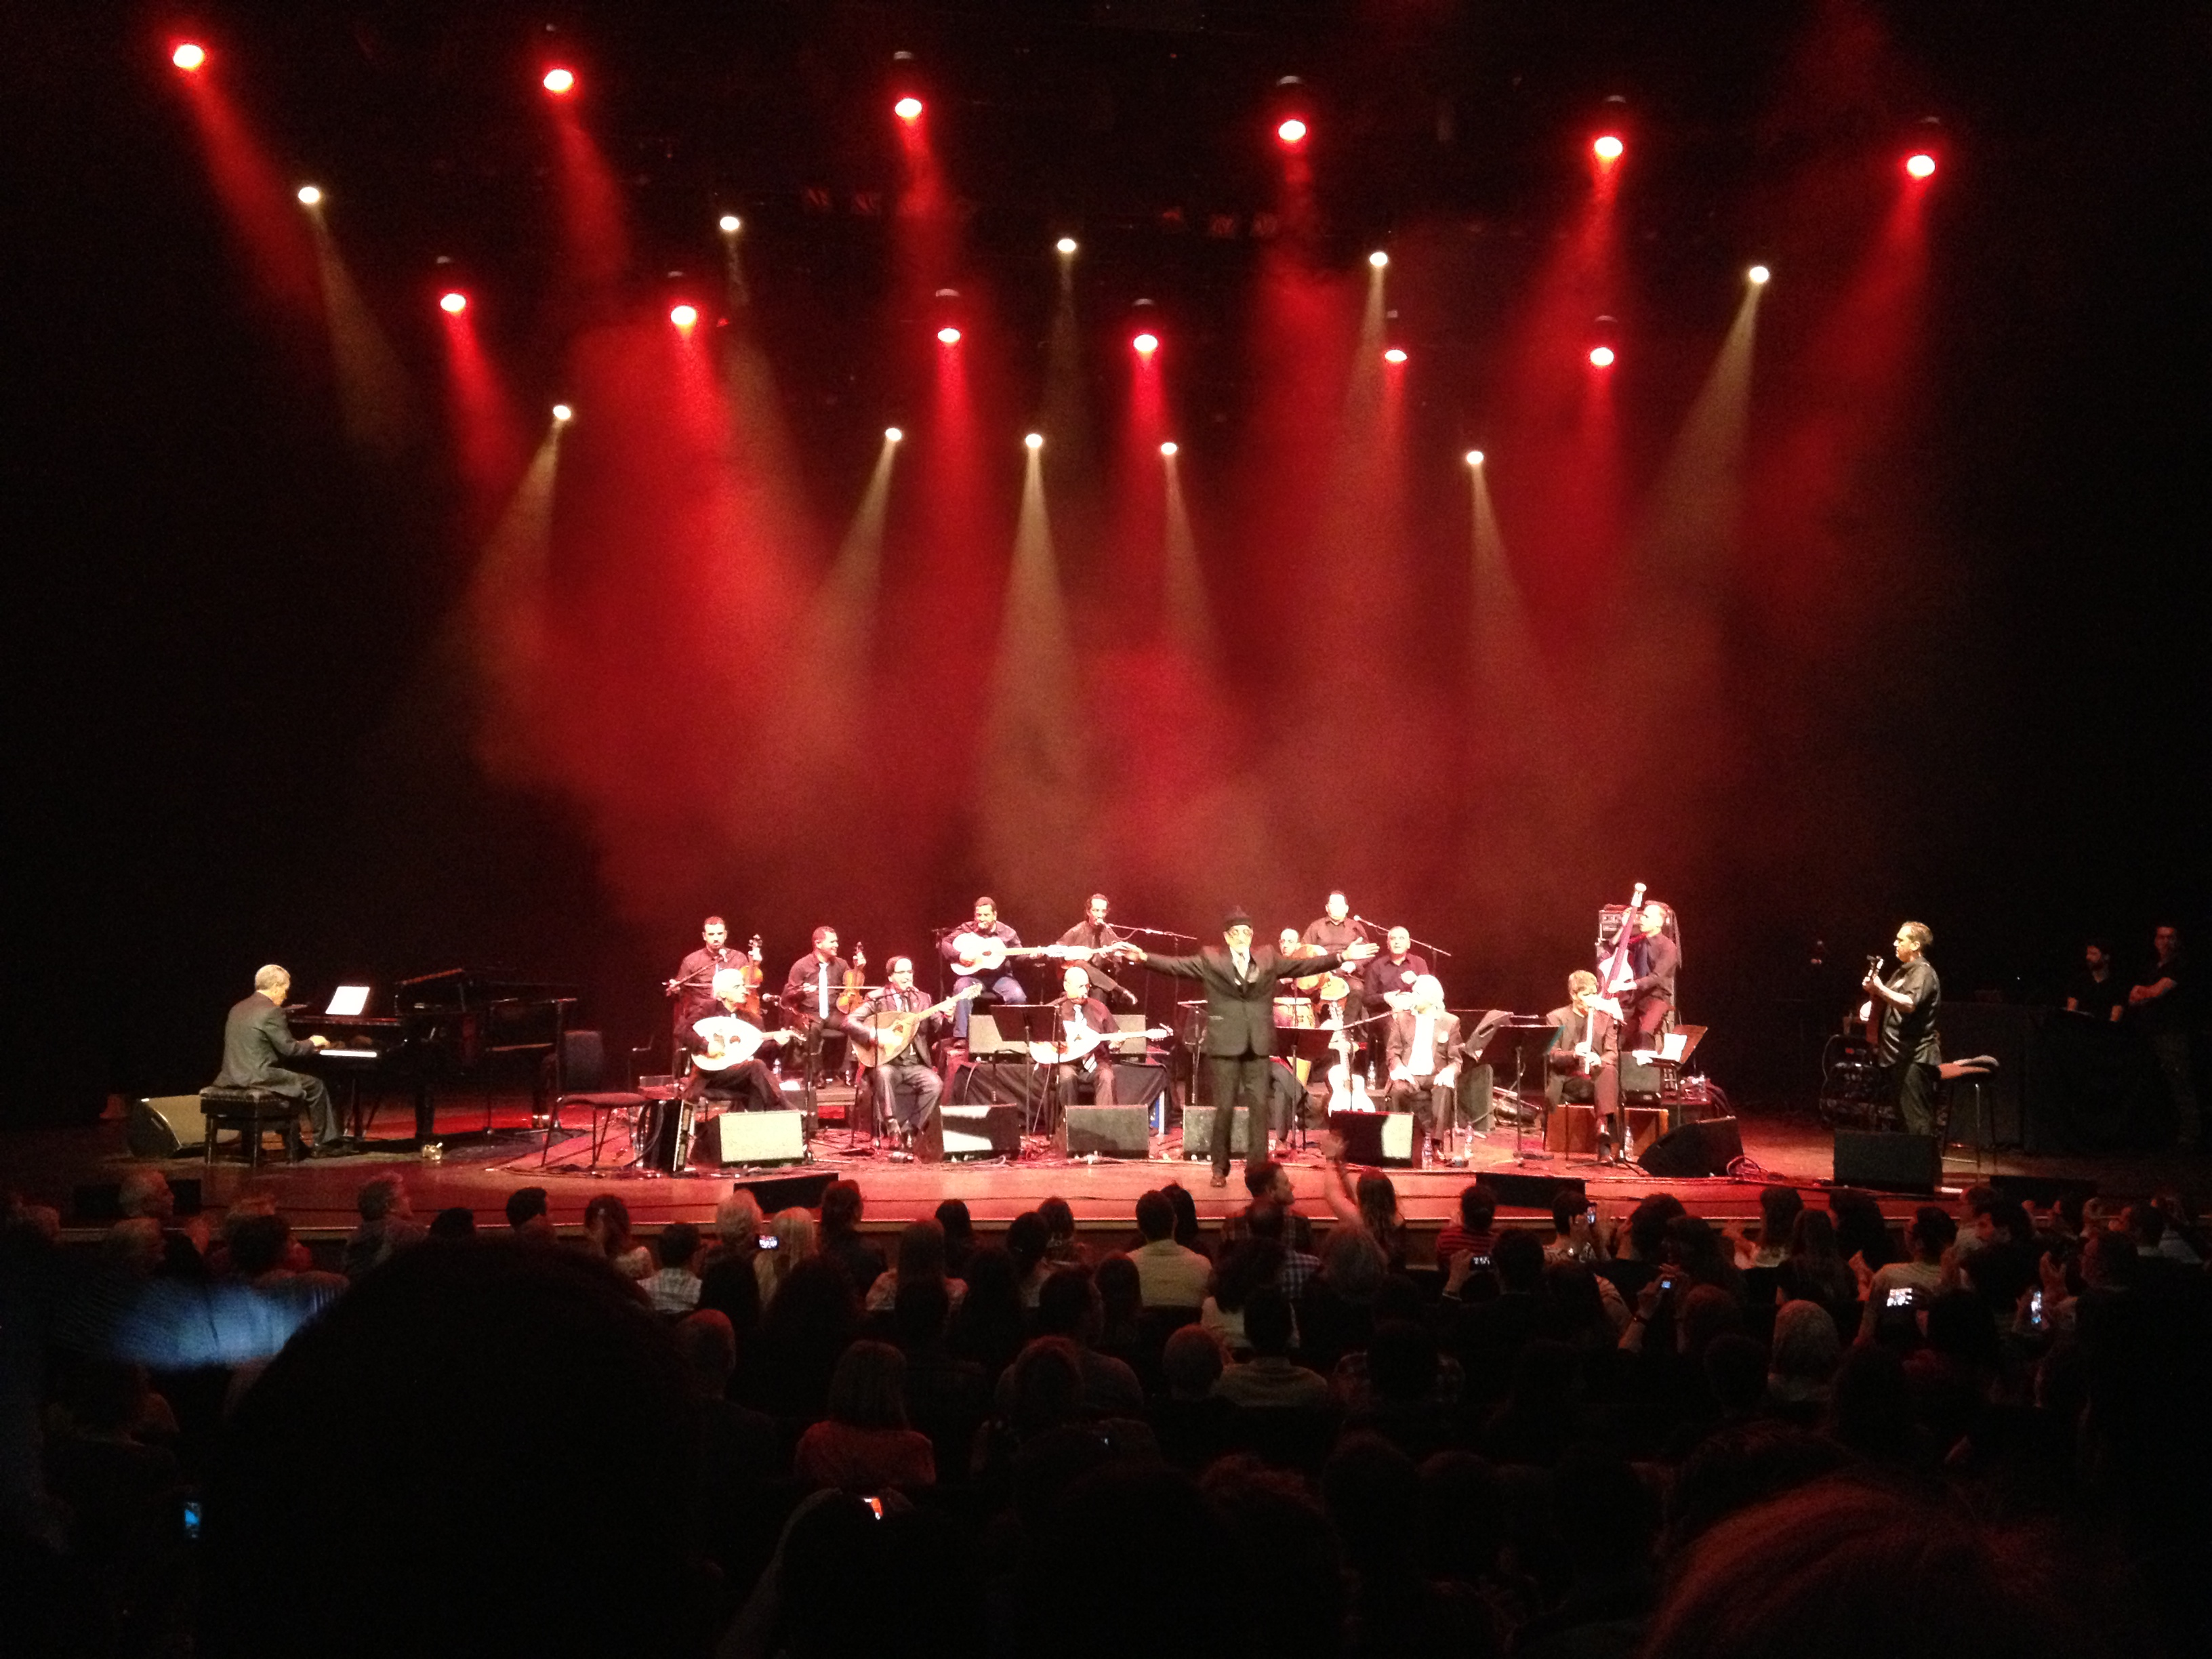 El Gusto Orchestra at the Barbican